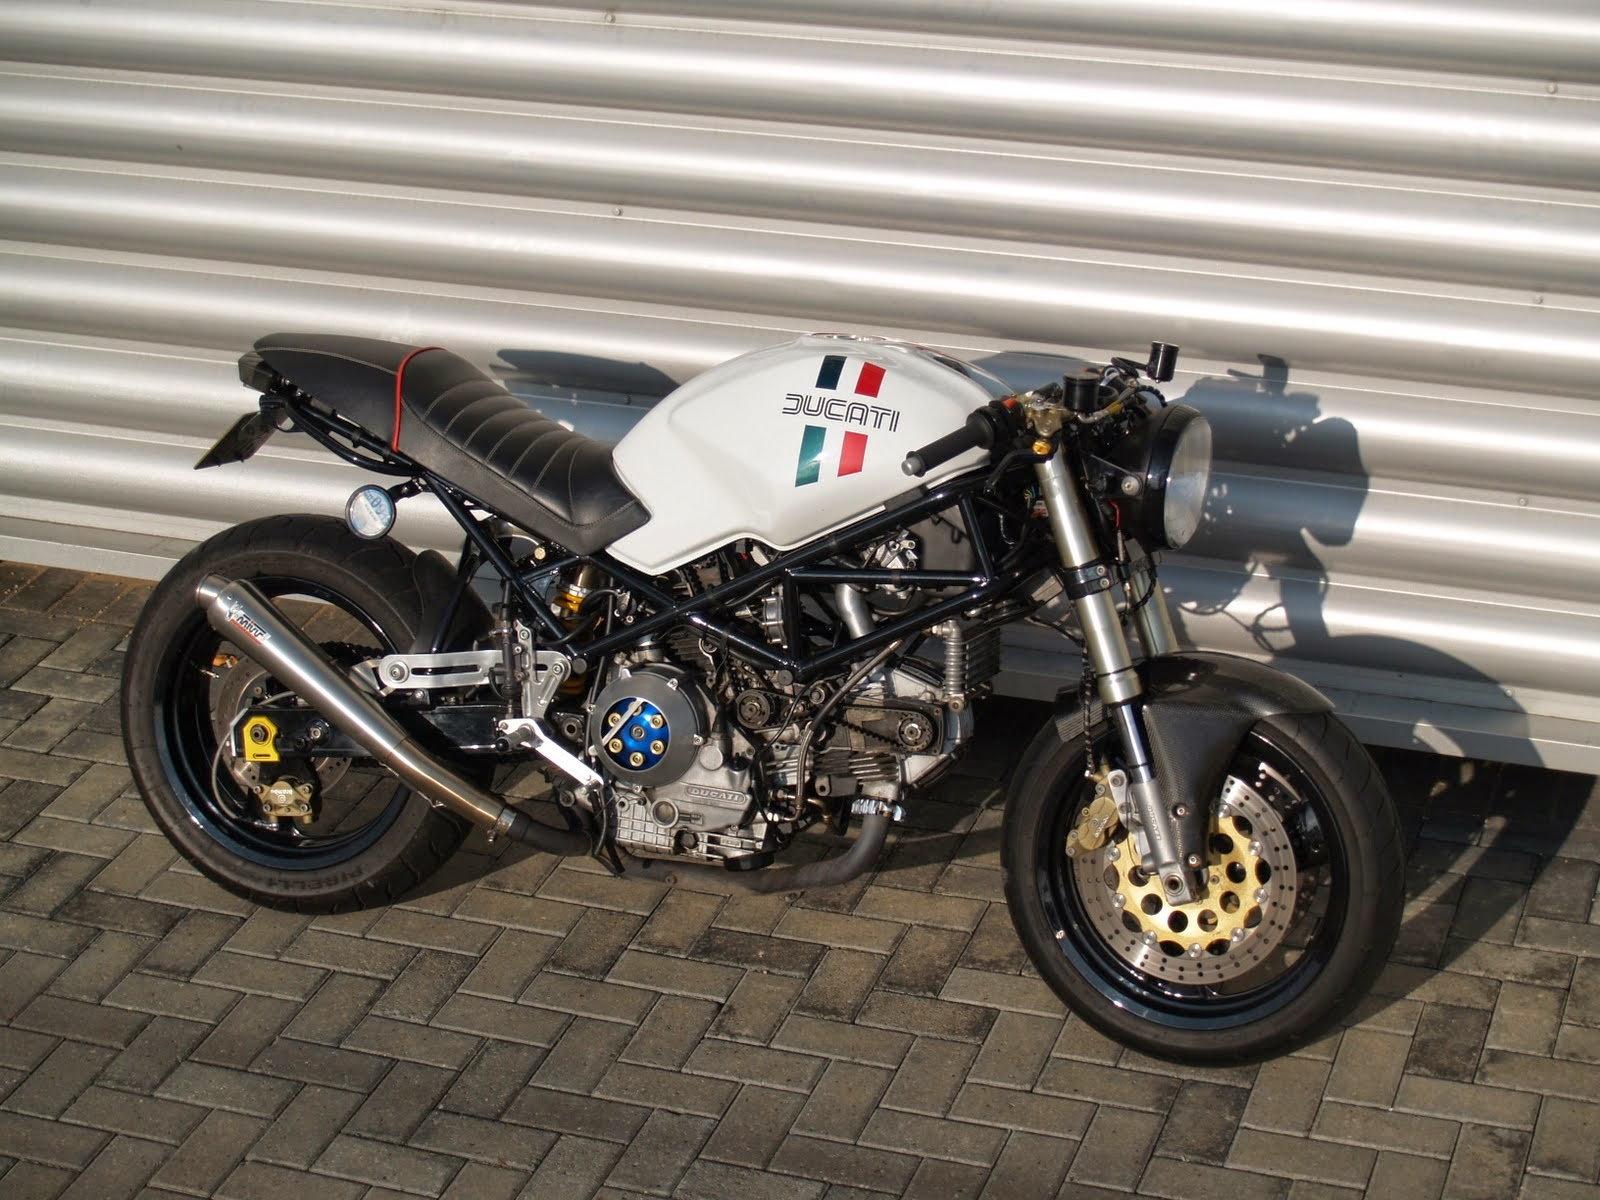 modif ducati monster cafe racer